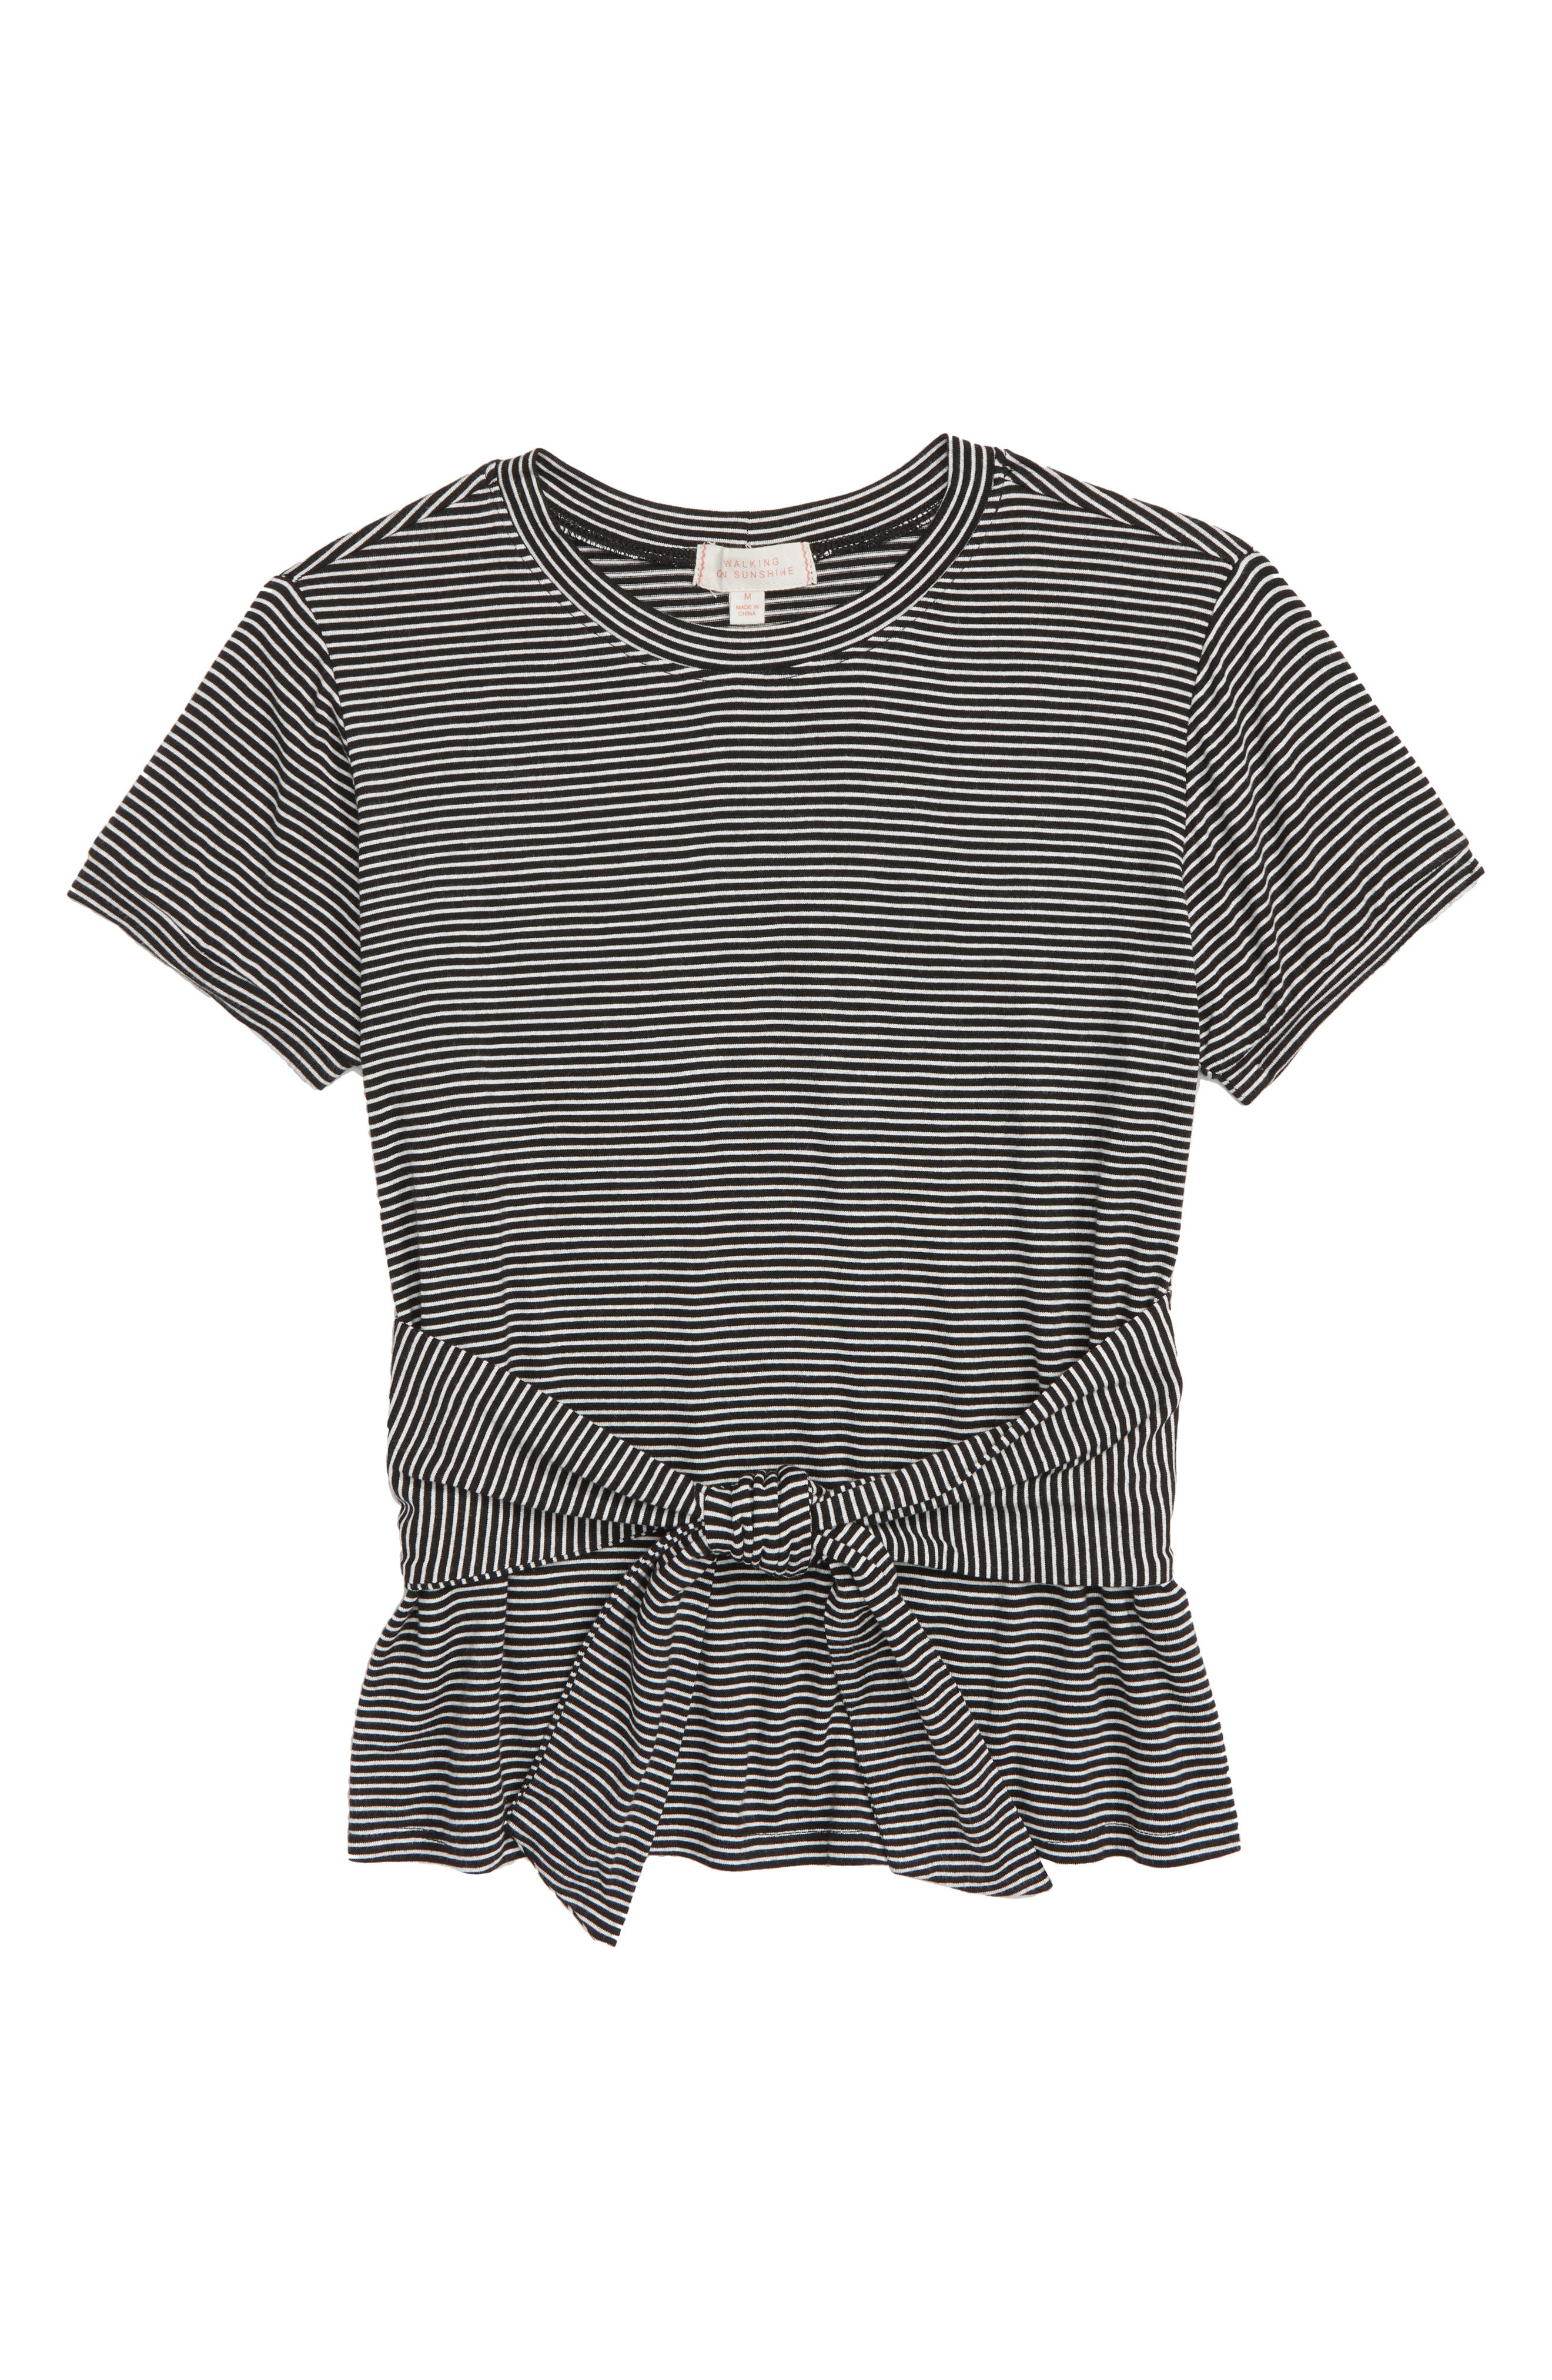 Knotted Tee,                         Main,                         color, 001